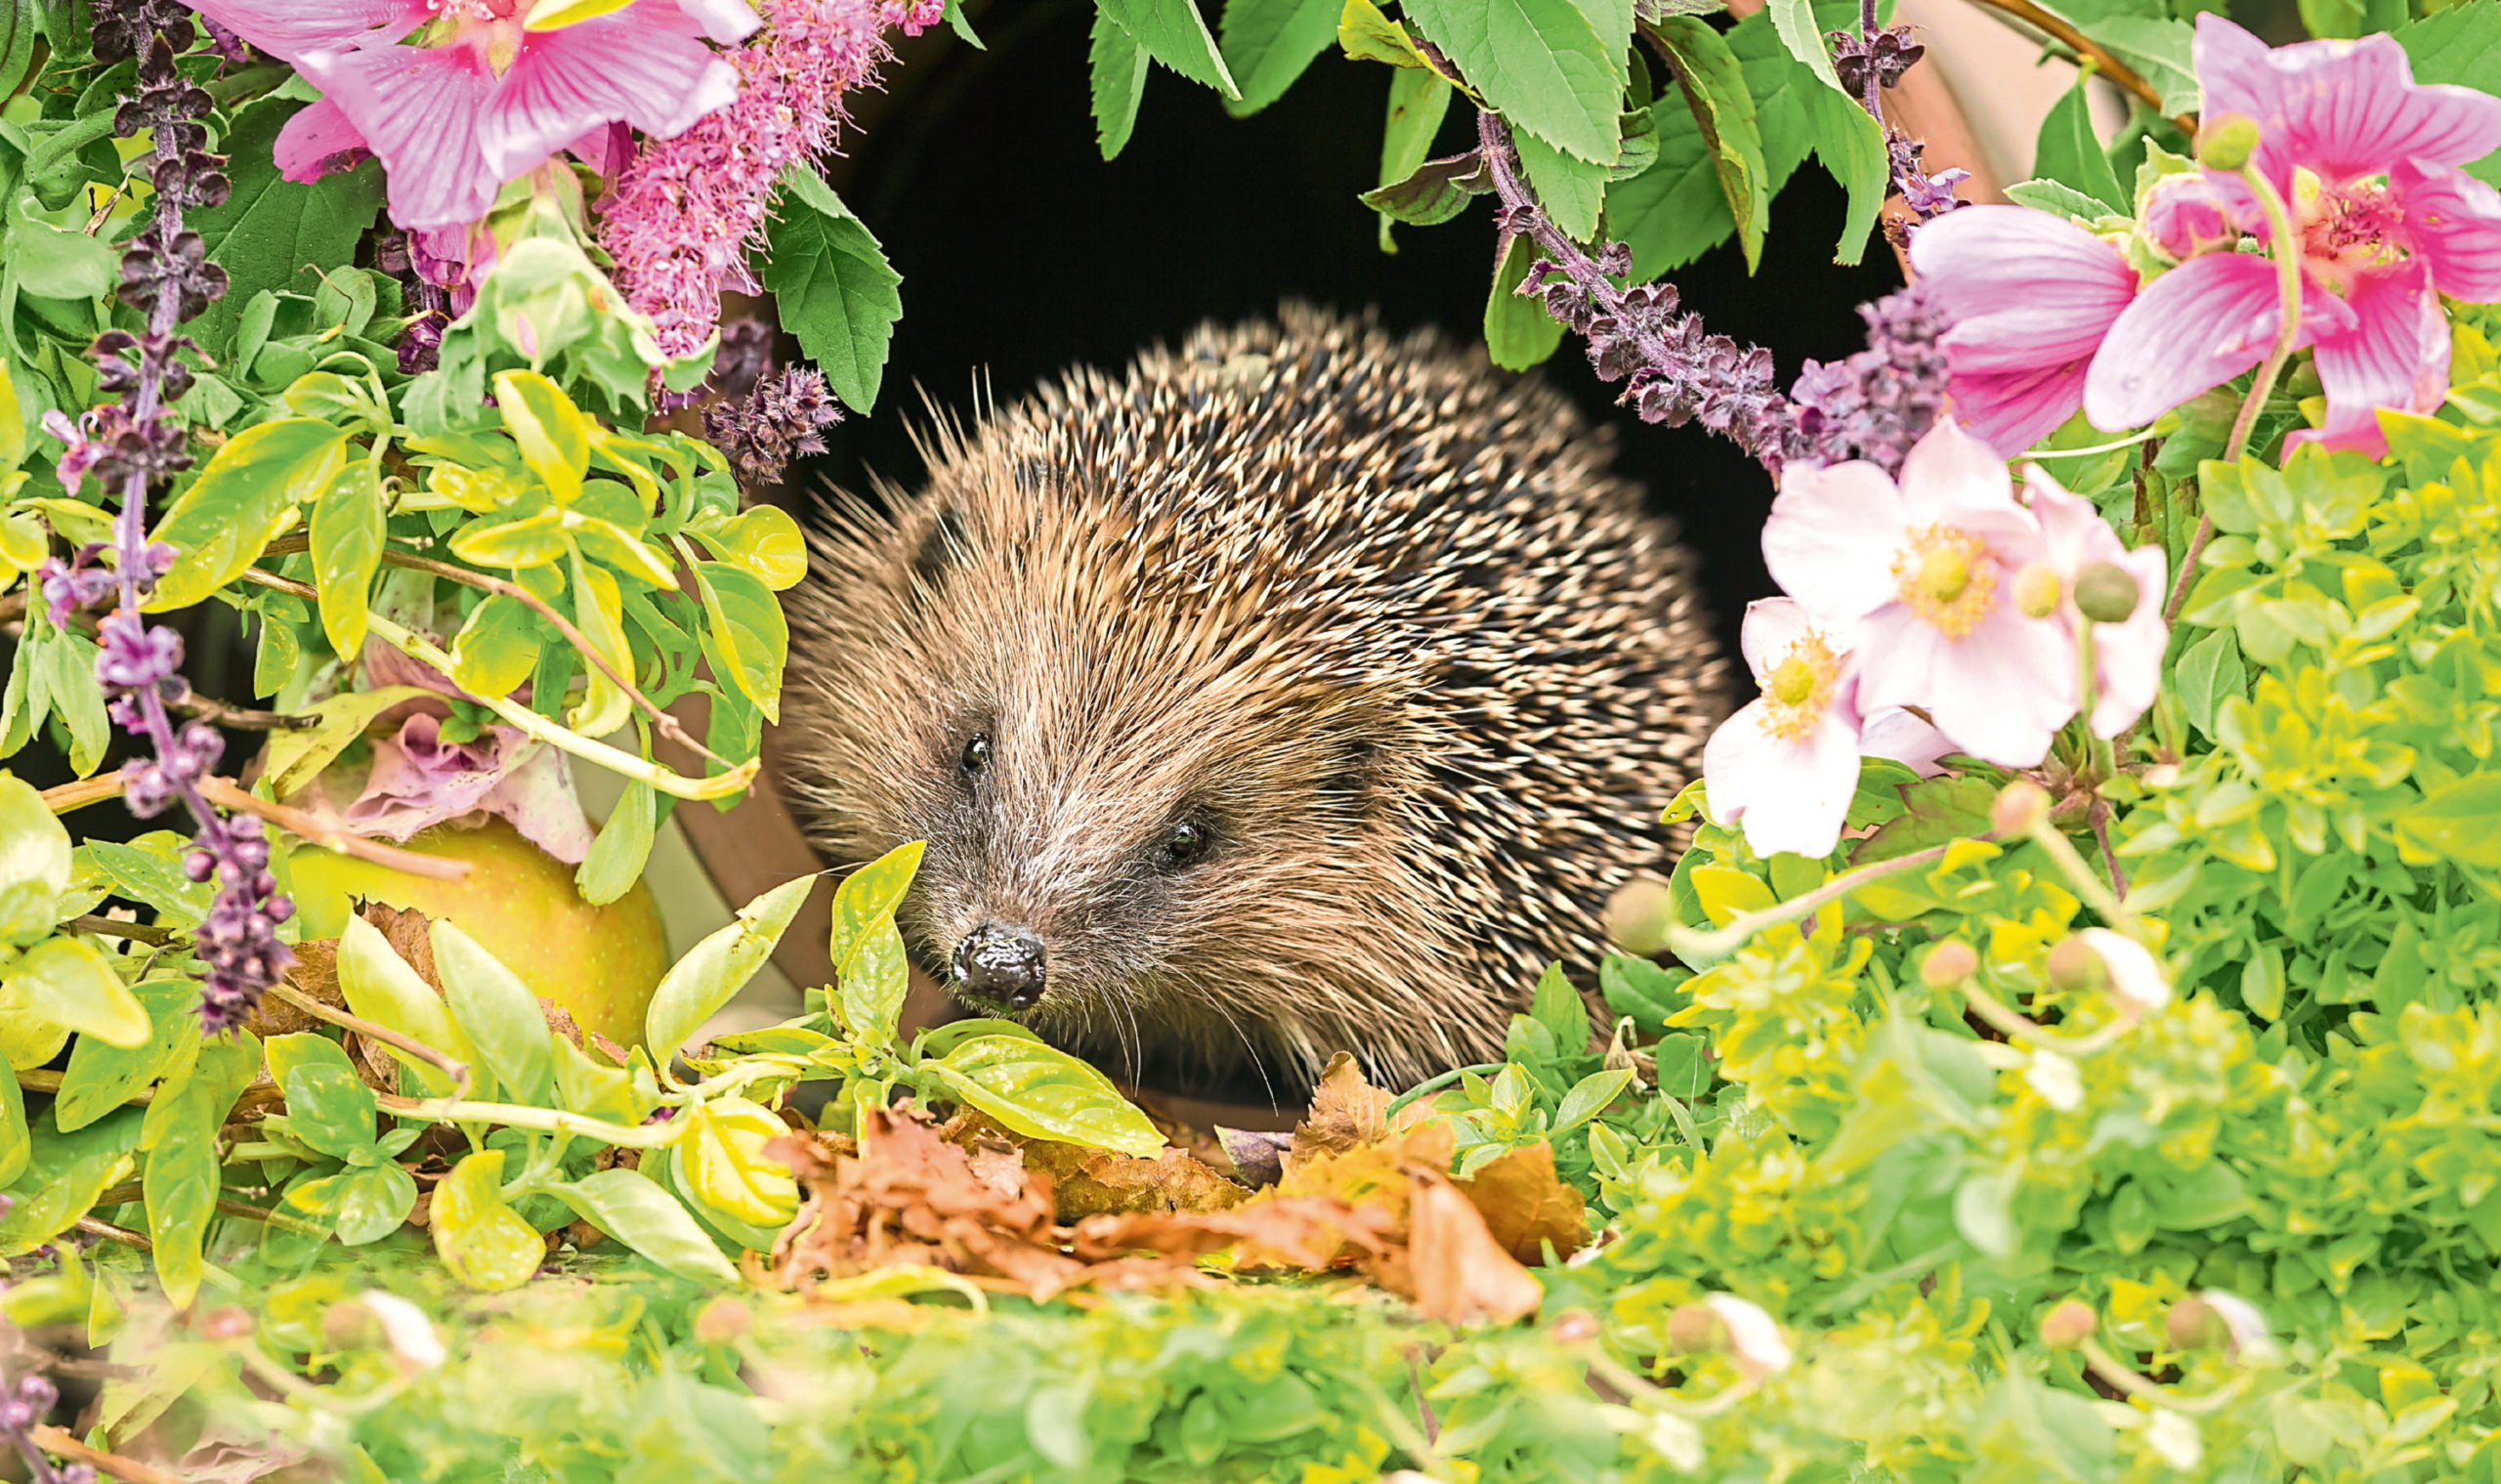 Hedgehog, a very pretty wild, native, European hedgehog surrounded by pink flowers and green foliage.  A delightful summer scene.  The hedgehog is looking forward.  Landscape. Horizontal.; Shutterstock ID 1057806746; Purchase Order: -